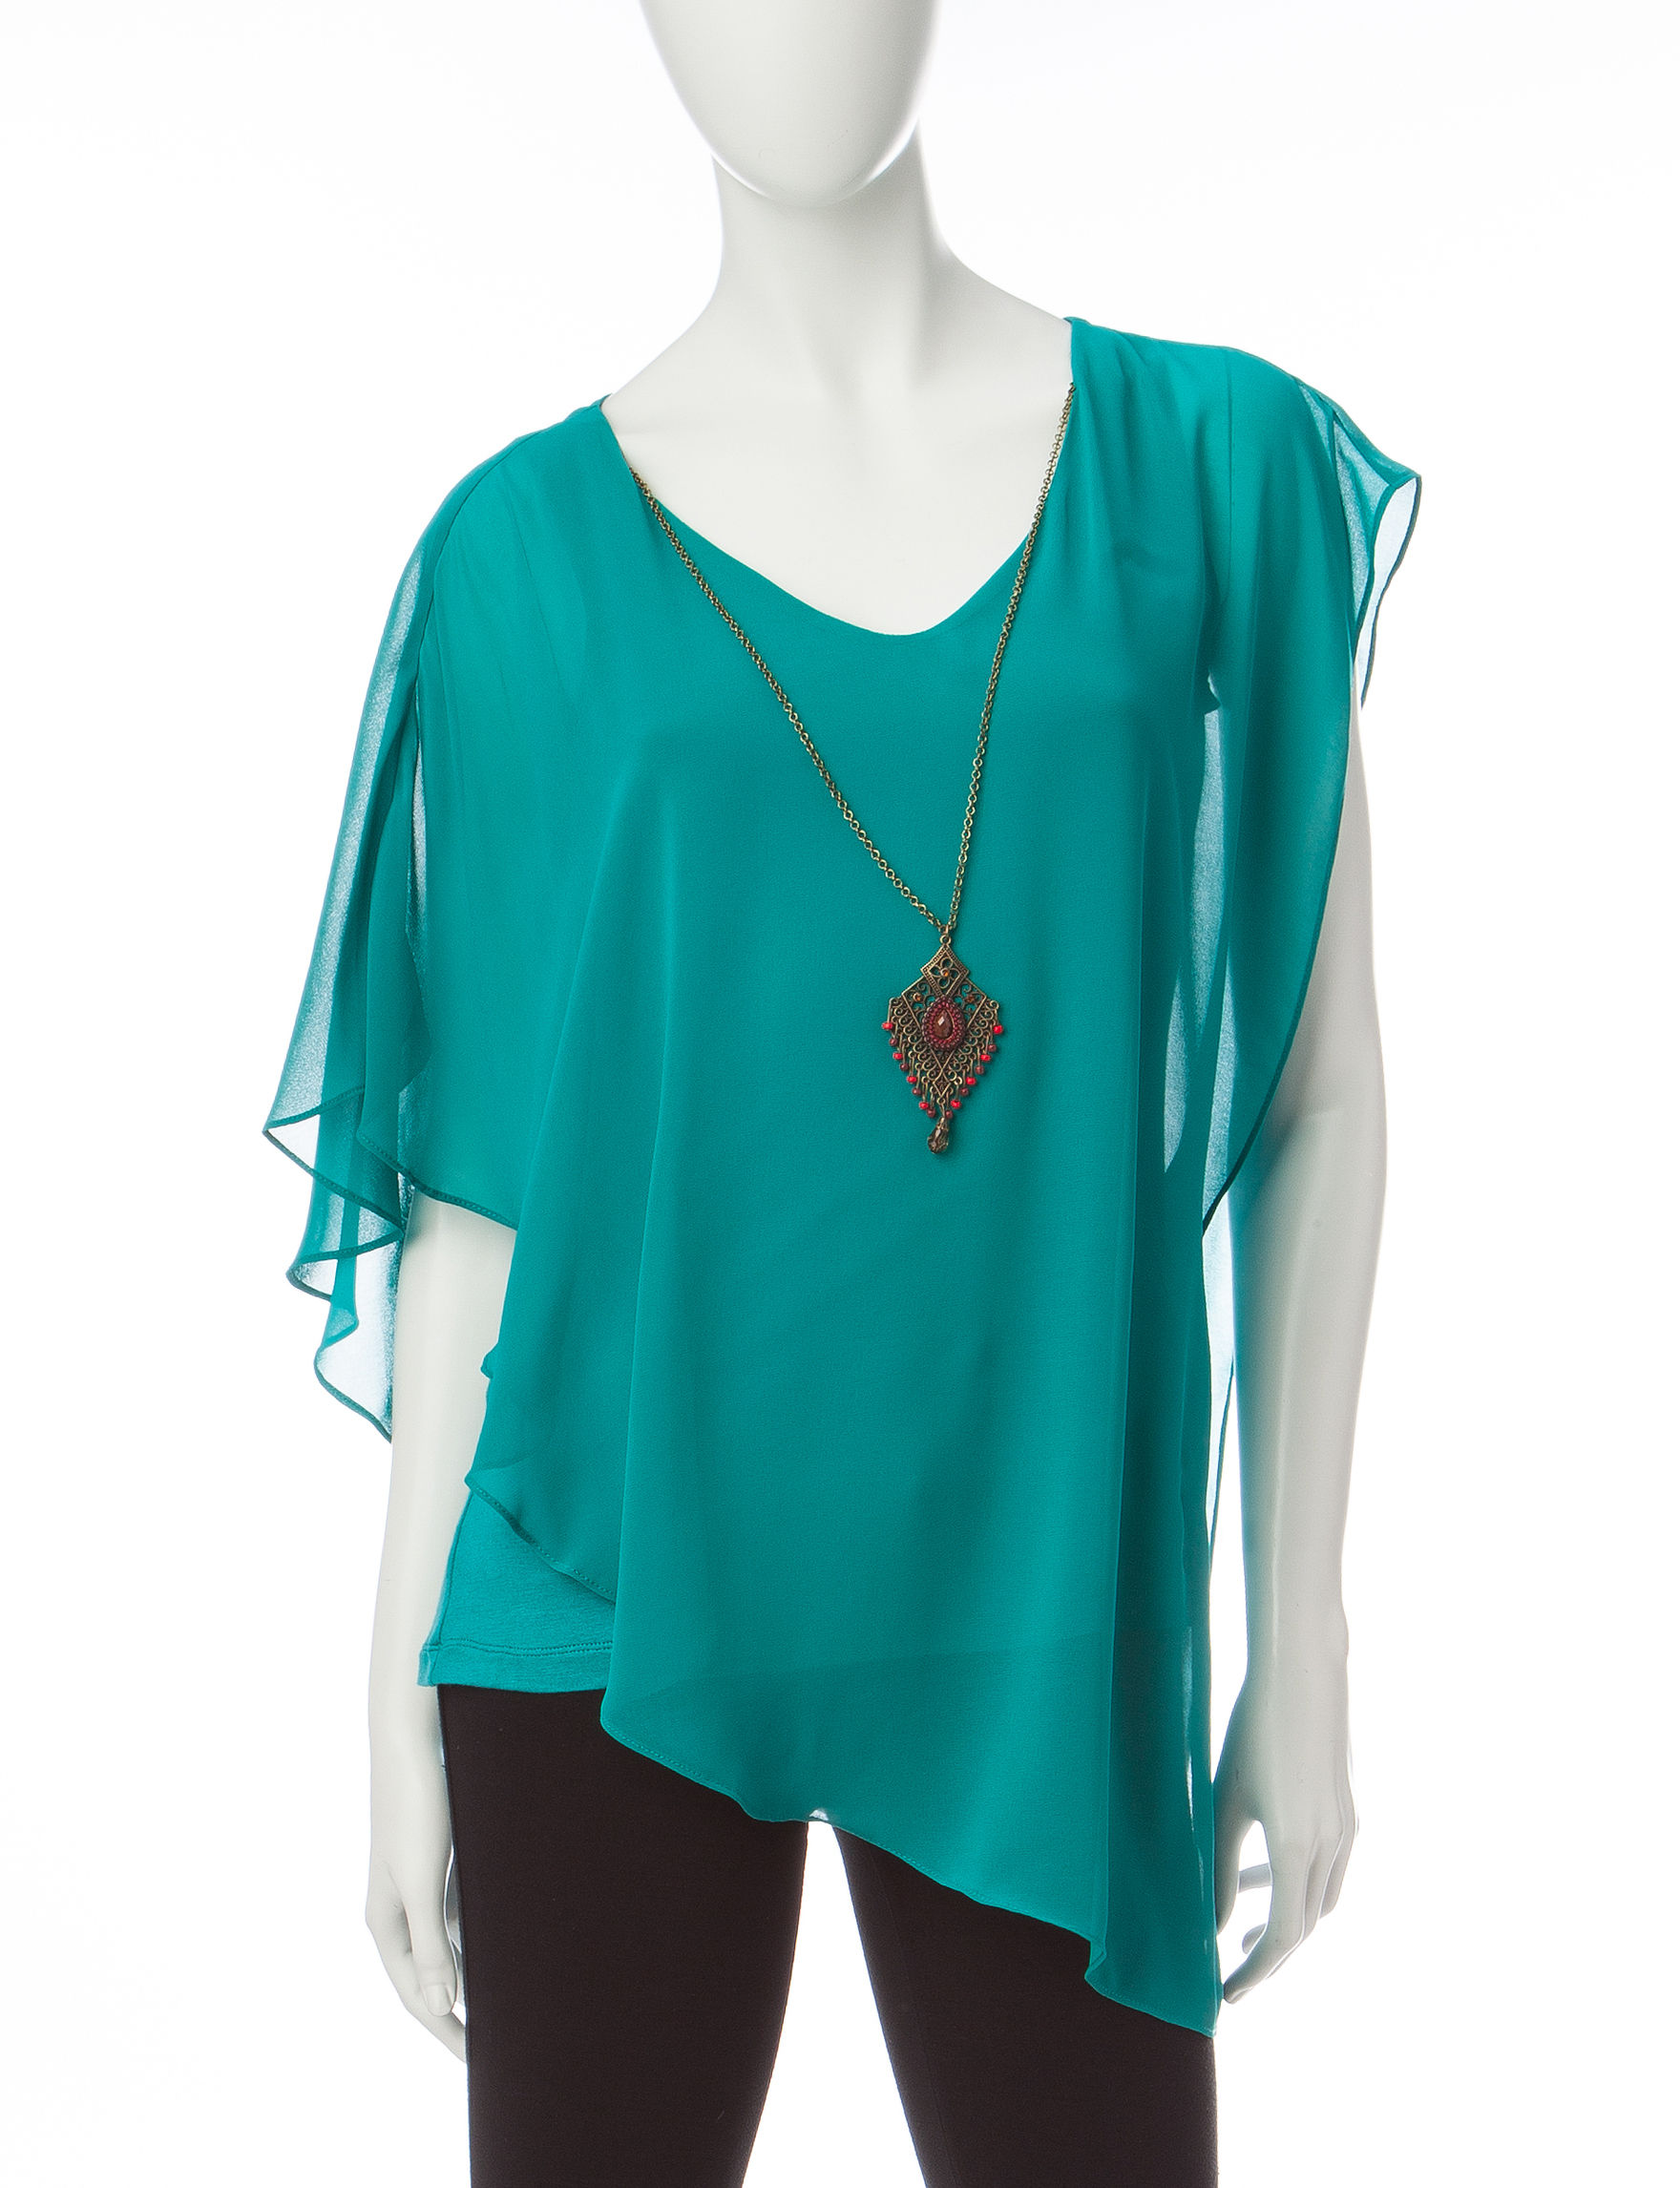 A. Byer Teal Shirts & Blouses